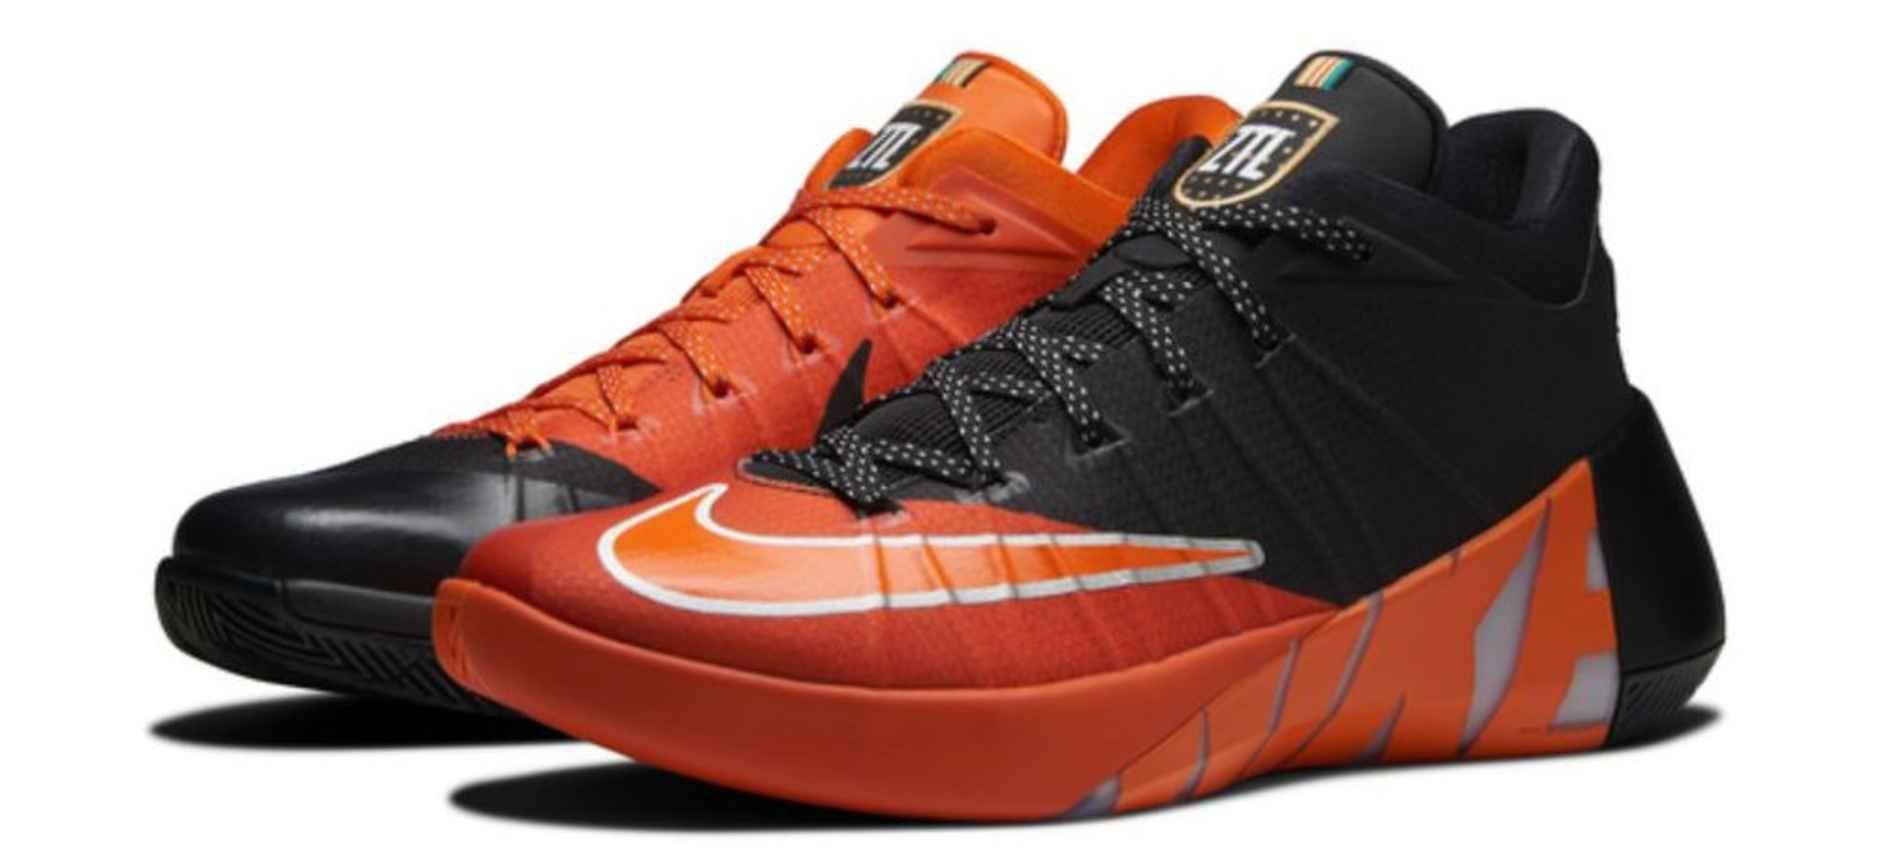 half off b5dcb 9425c ZACH LAVINE WON AN EPIC 2016 NBA DUNK CONTEST IN THESE NIKE HYPERDUNK 2015  LOW PE S